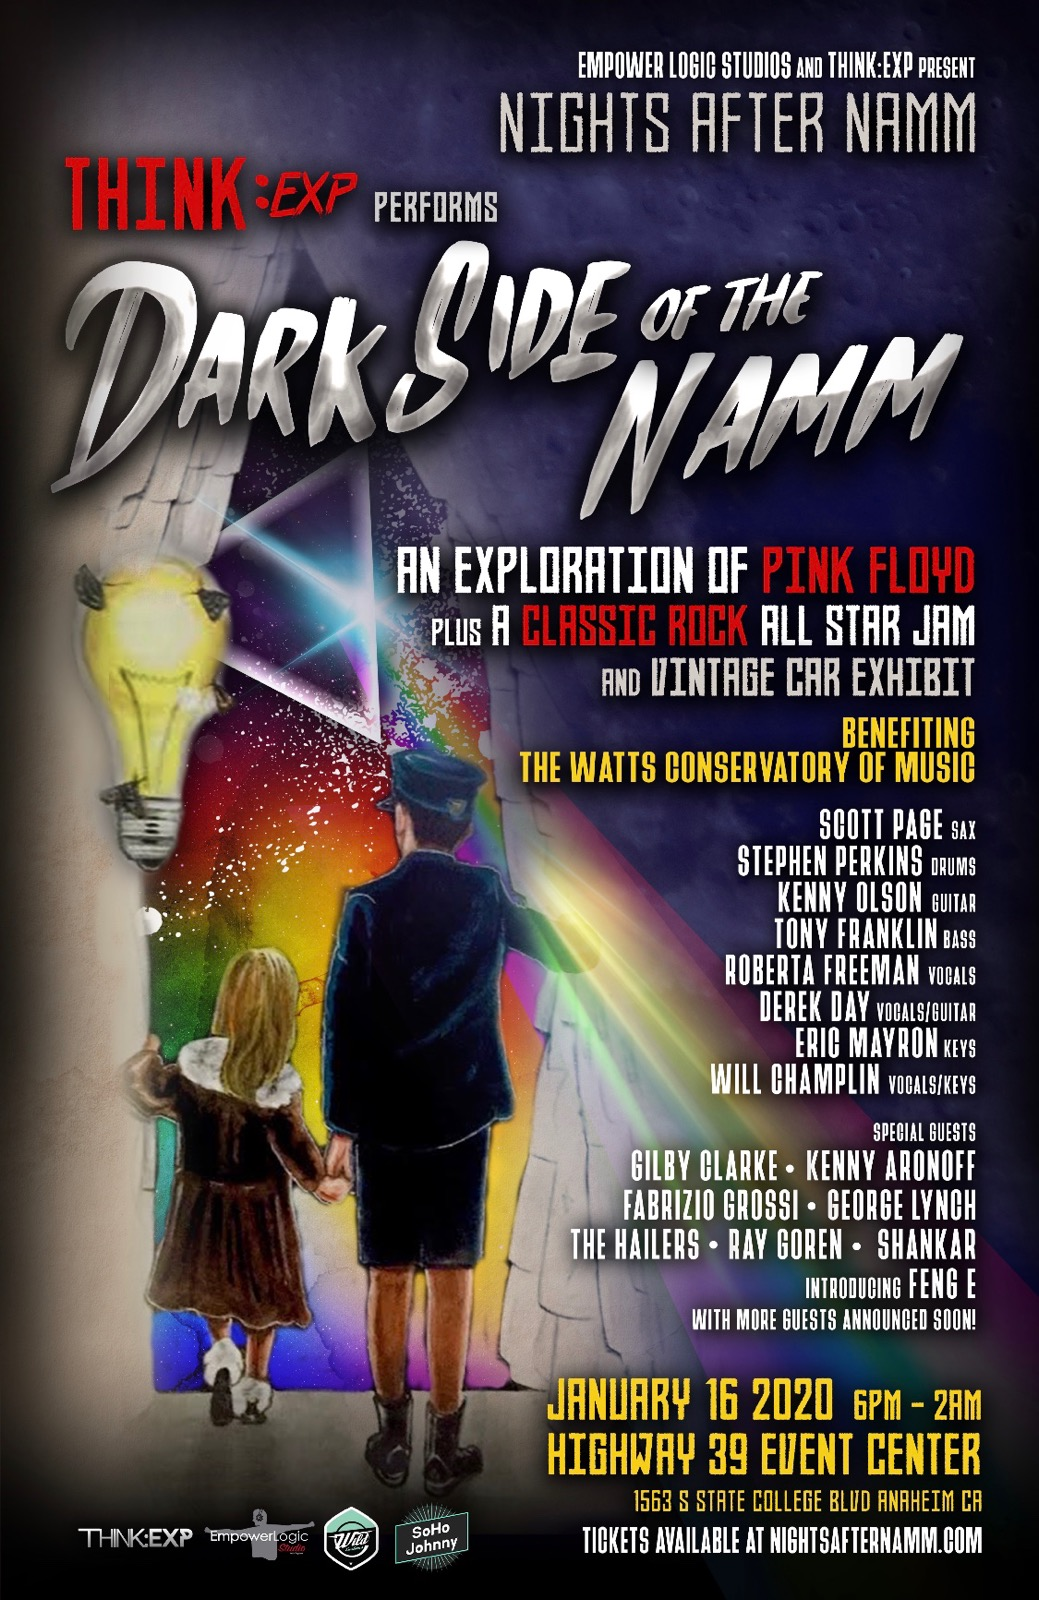 """Nights After NAMM"" Goes To The Dark Side For Charity - The Hollywood Digest"